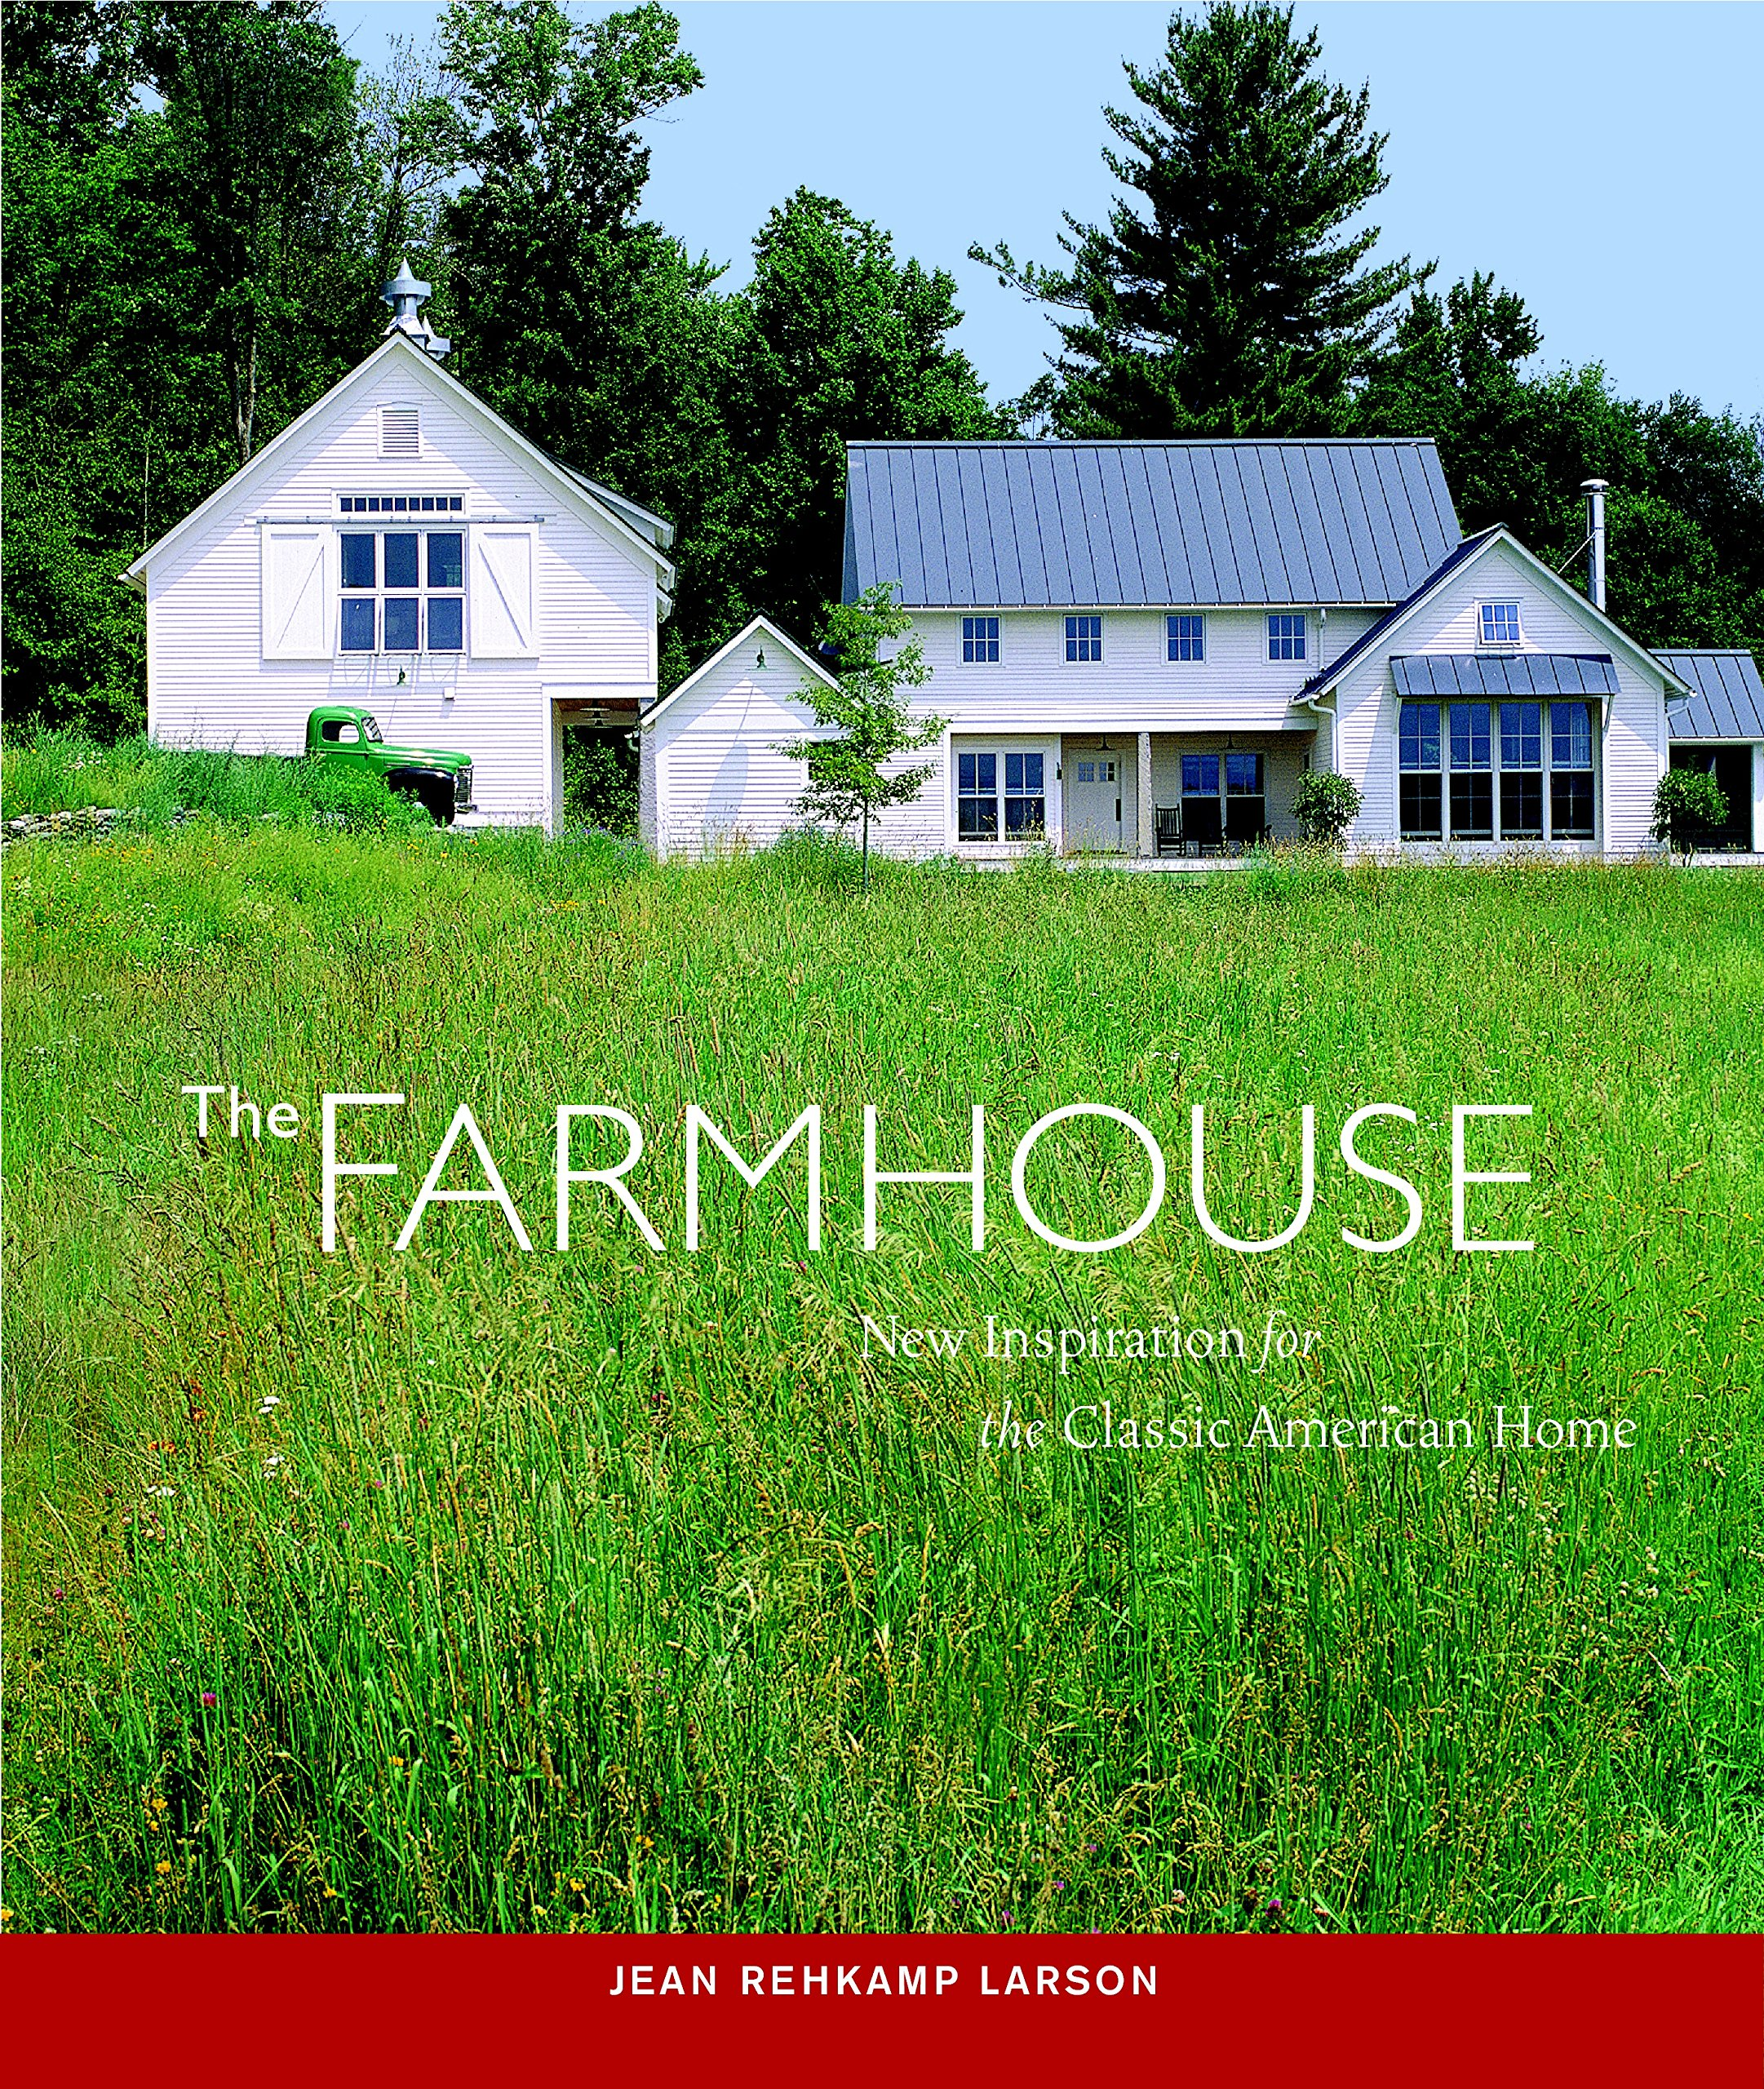 The Farmhouse New Inspiration for the Classic